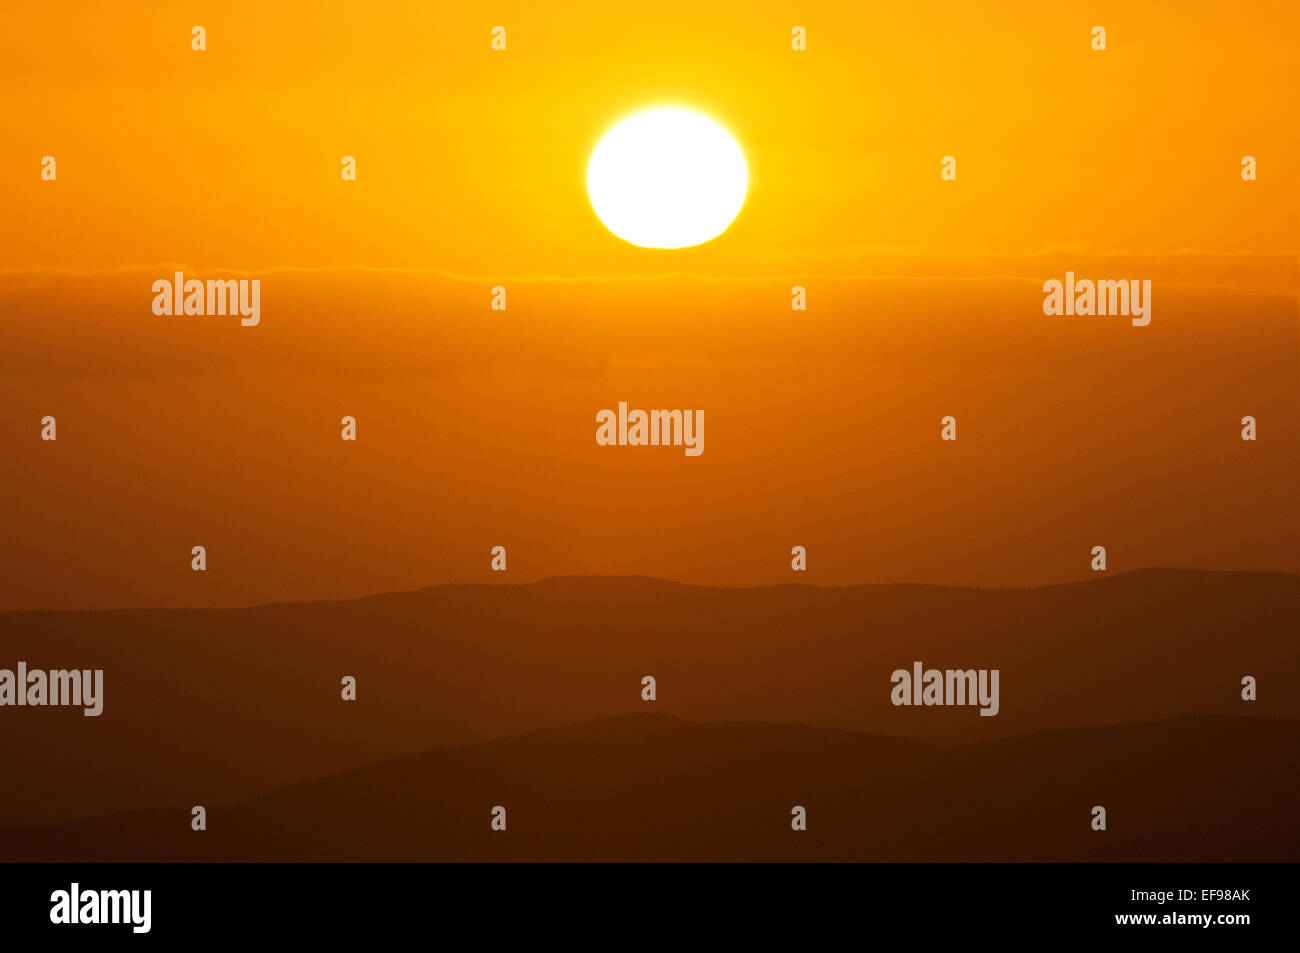 Sun in a colourful mood. - Stock Image